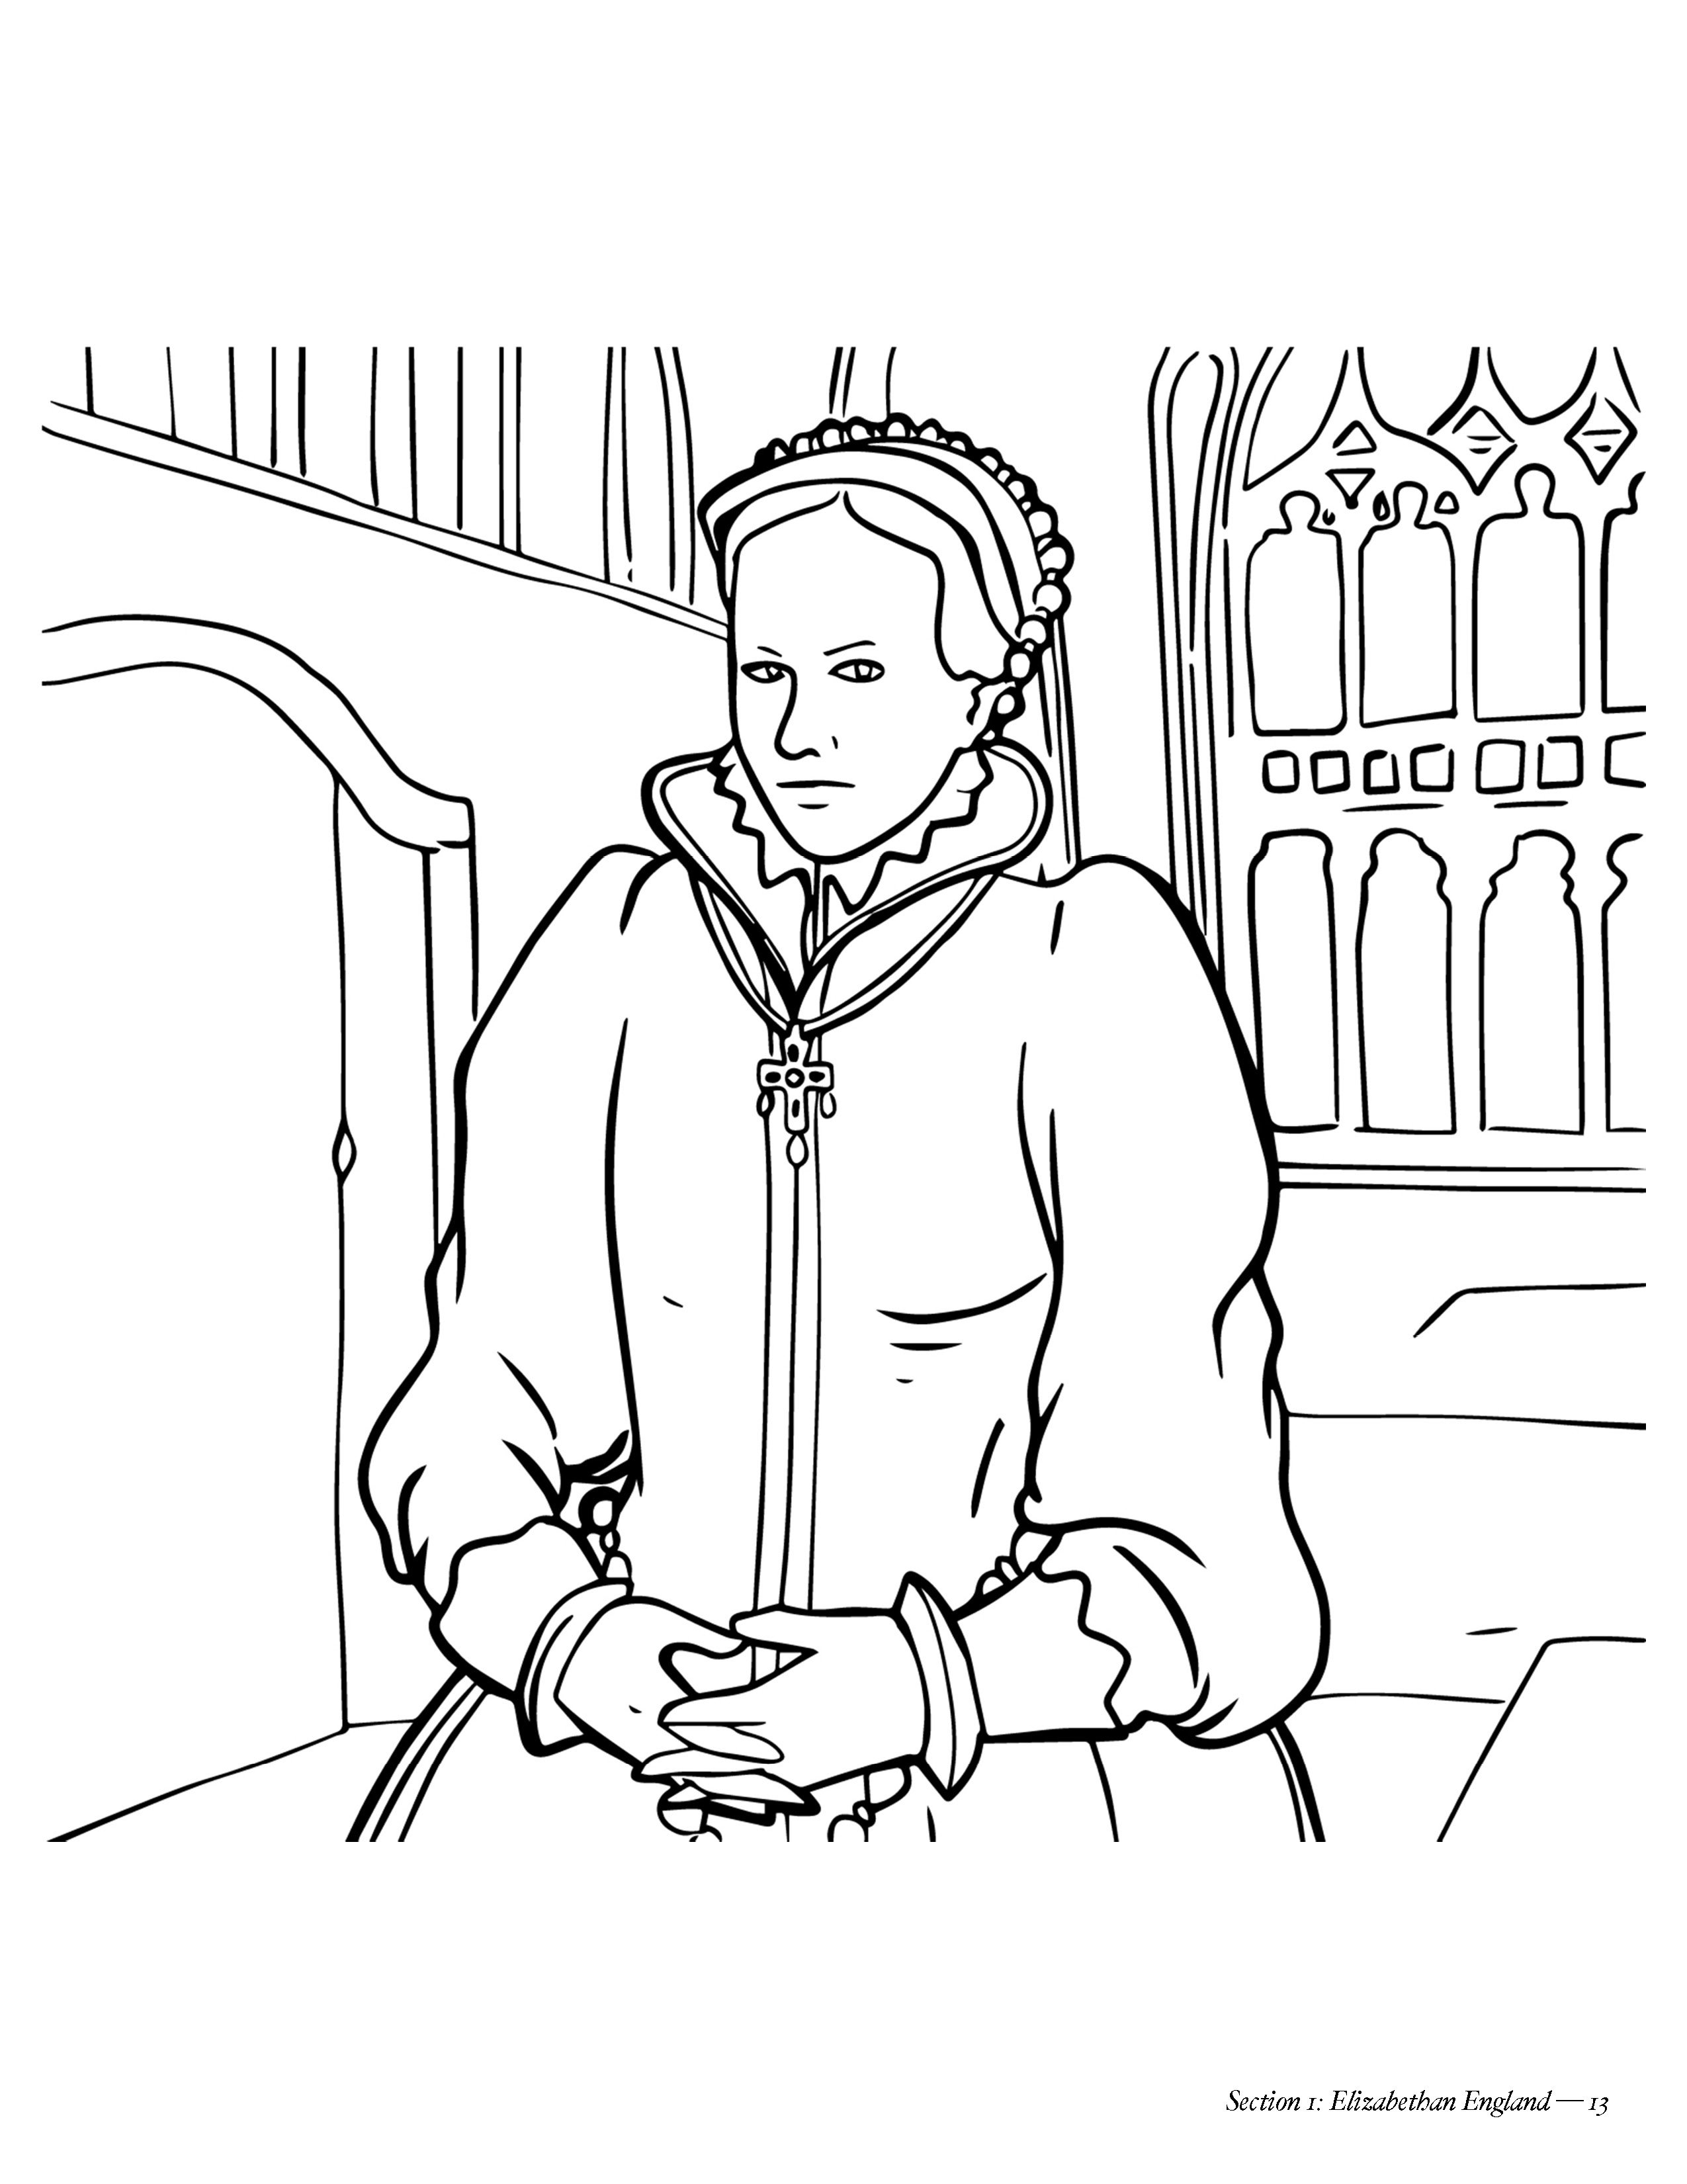 PDF Student's Activity Guide to Early Modern History Vol